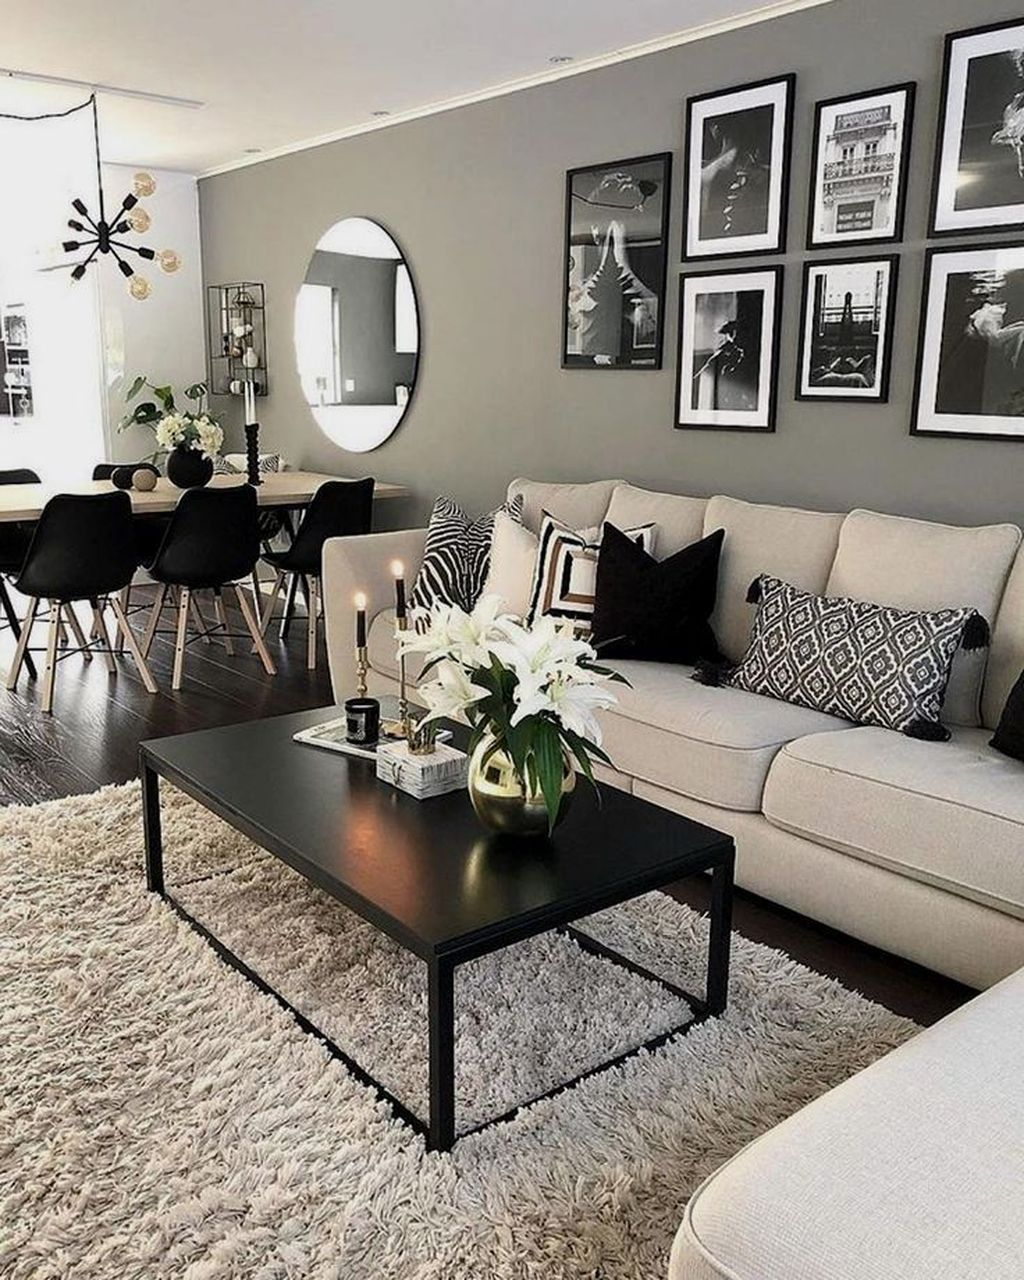 Home Design Ideas Classy: 33 Perfect Black And White Color Ideas For Your Living